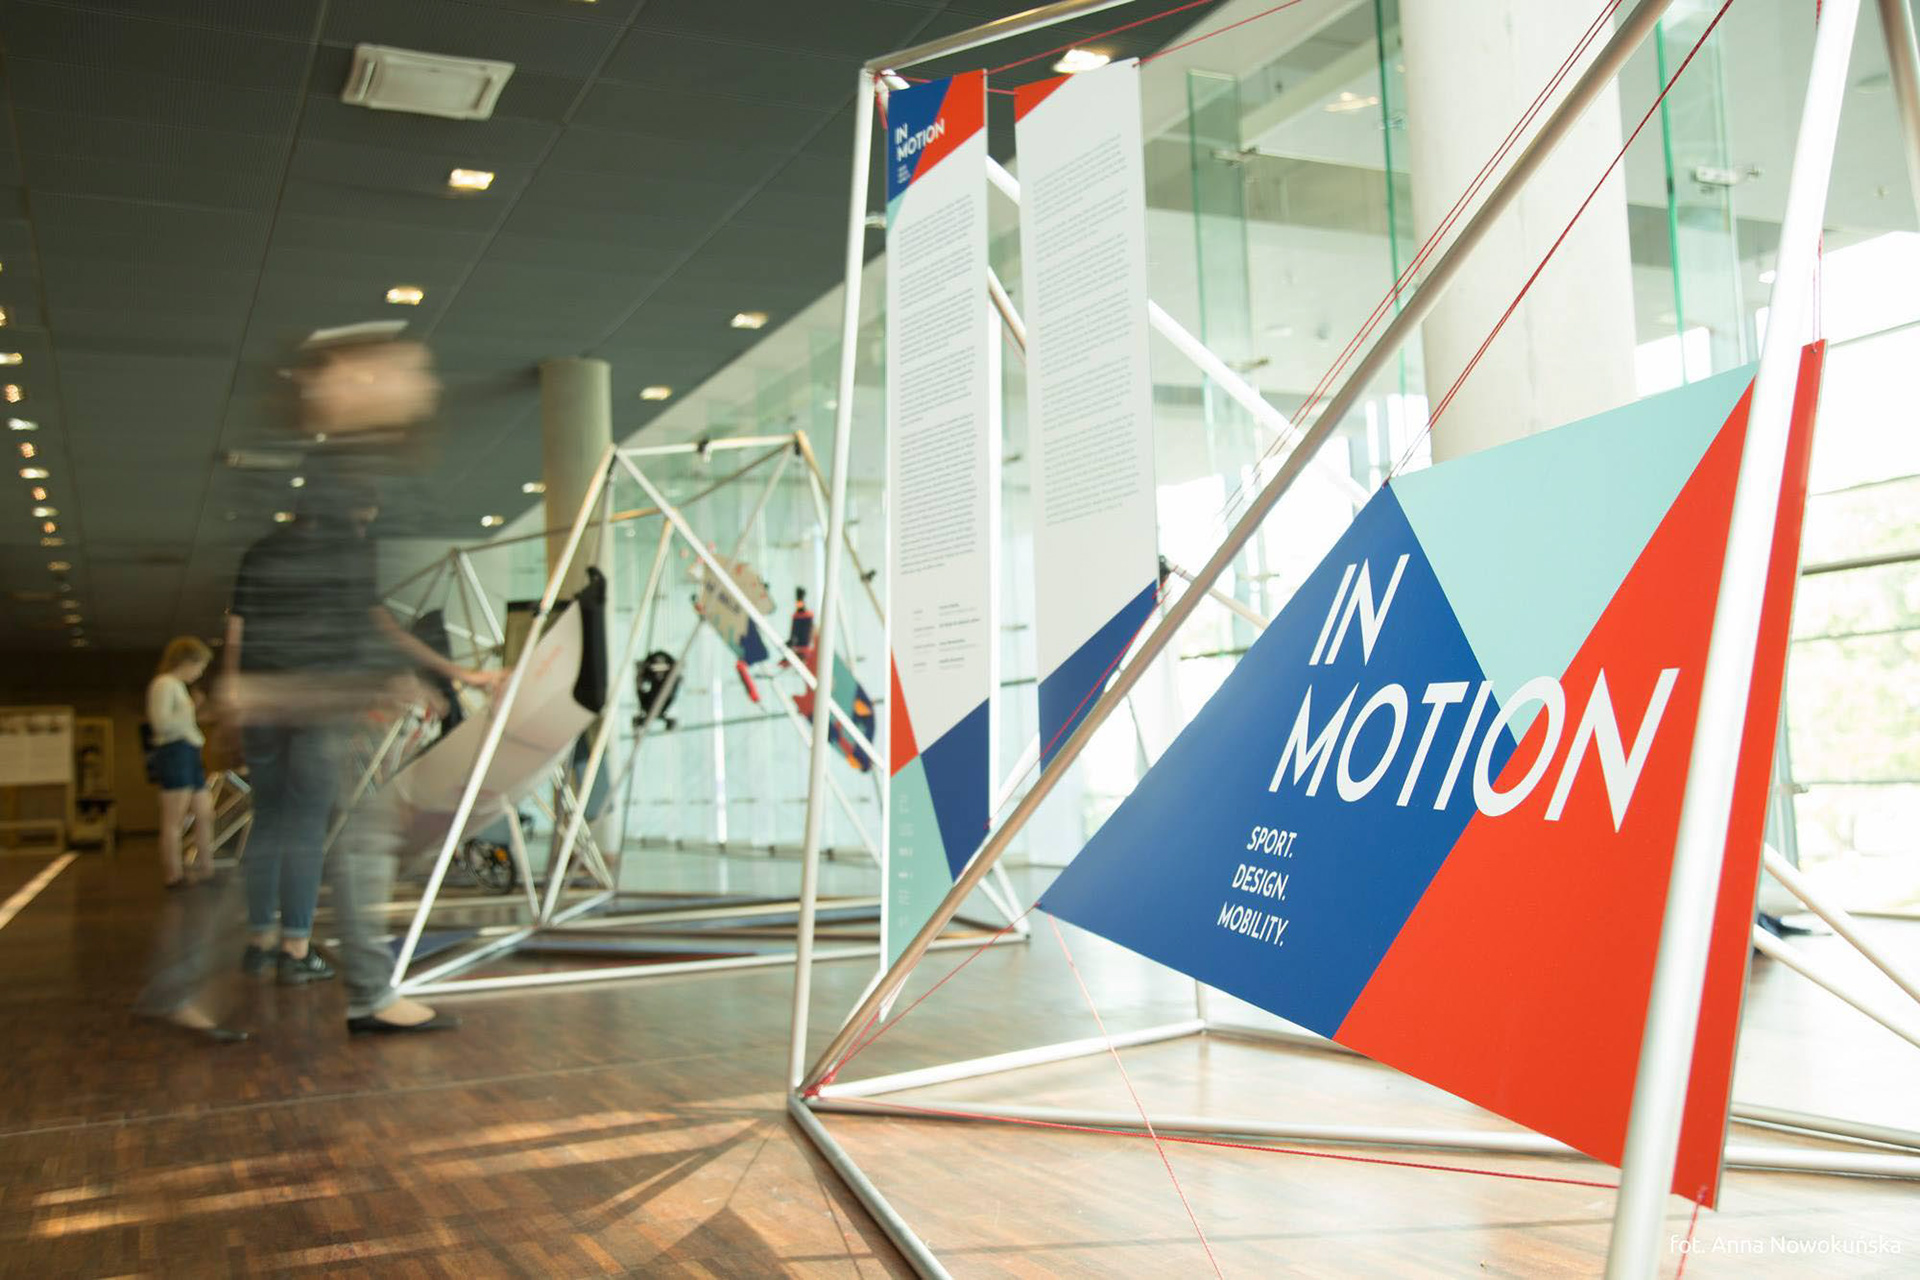 In motion project